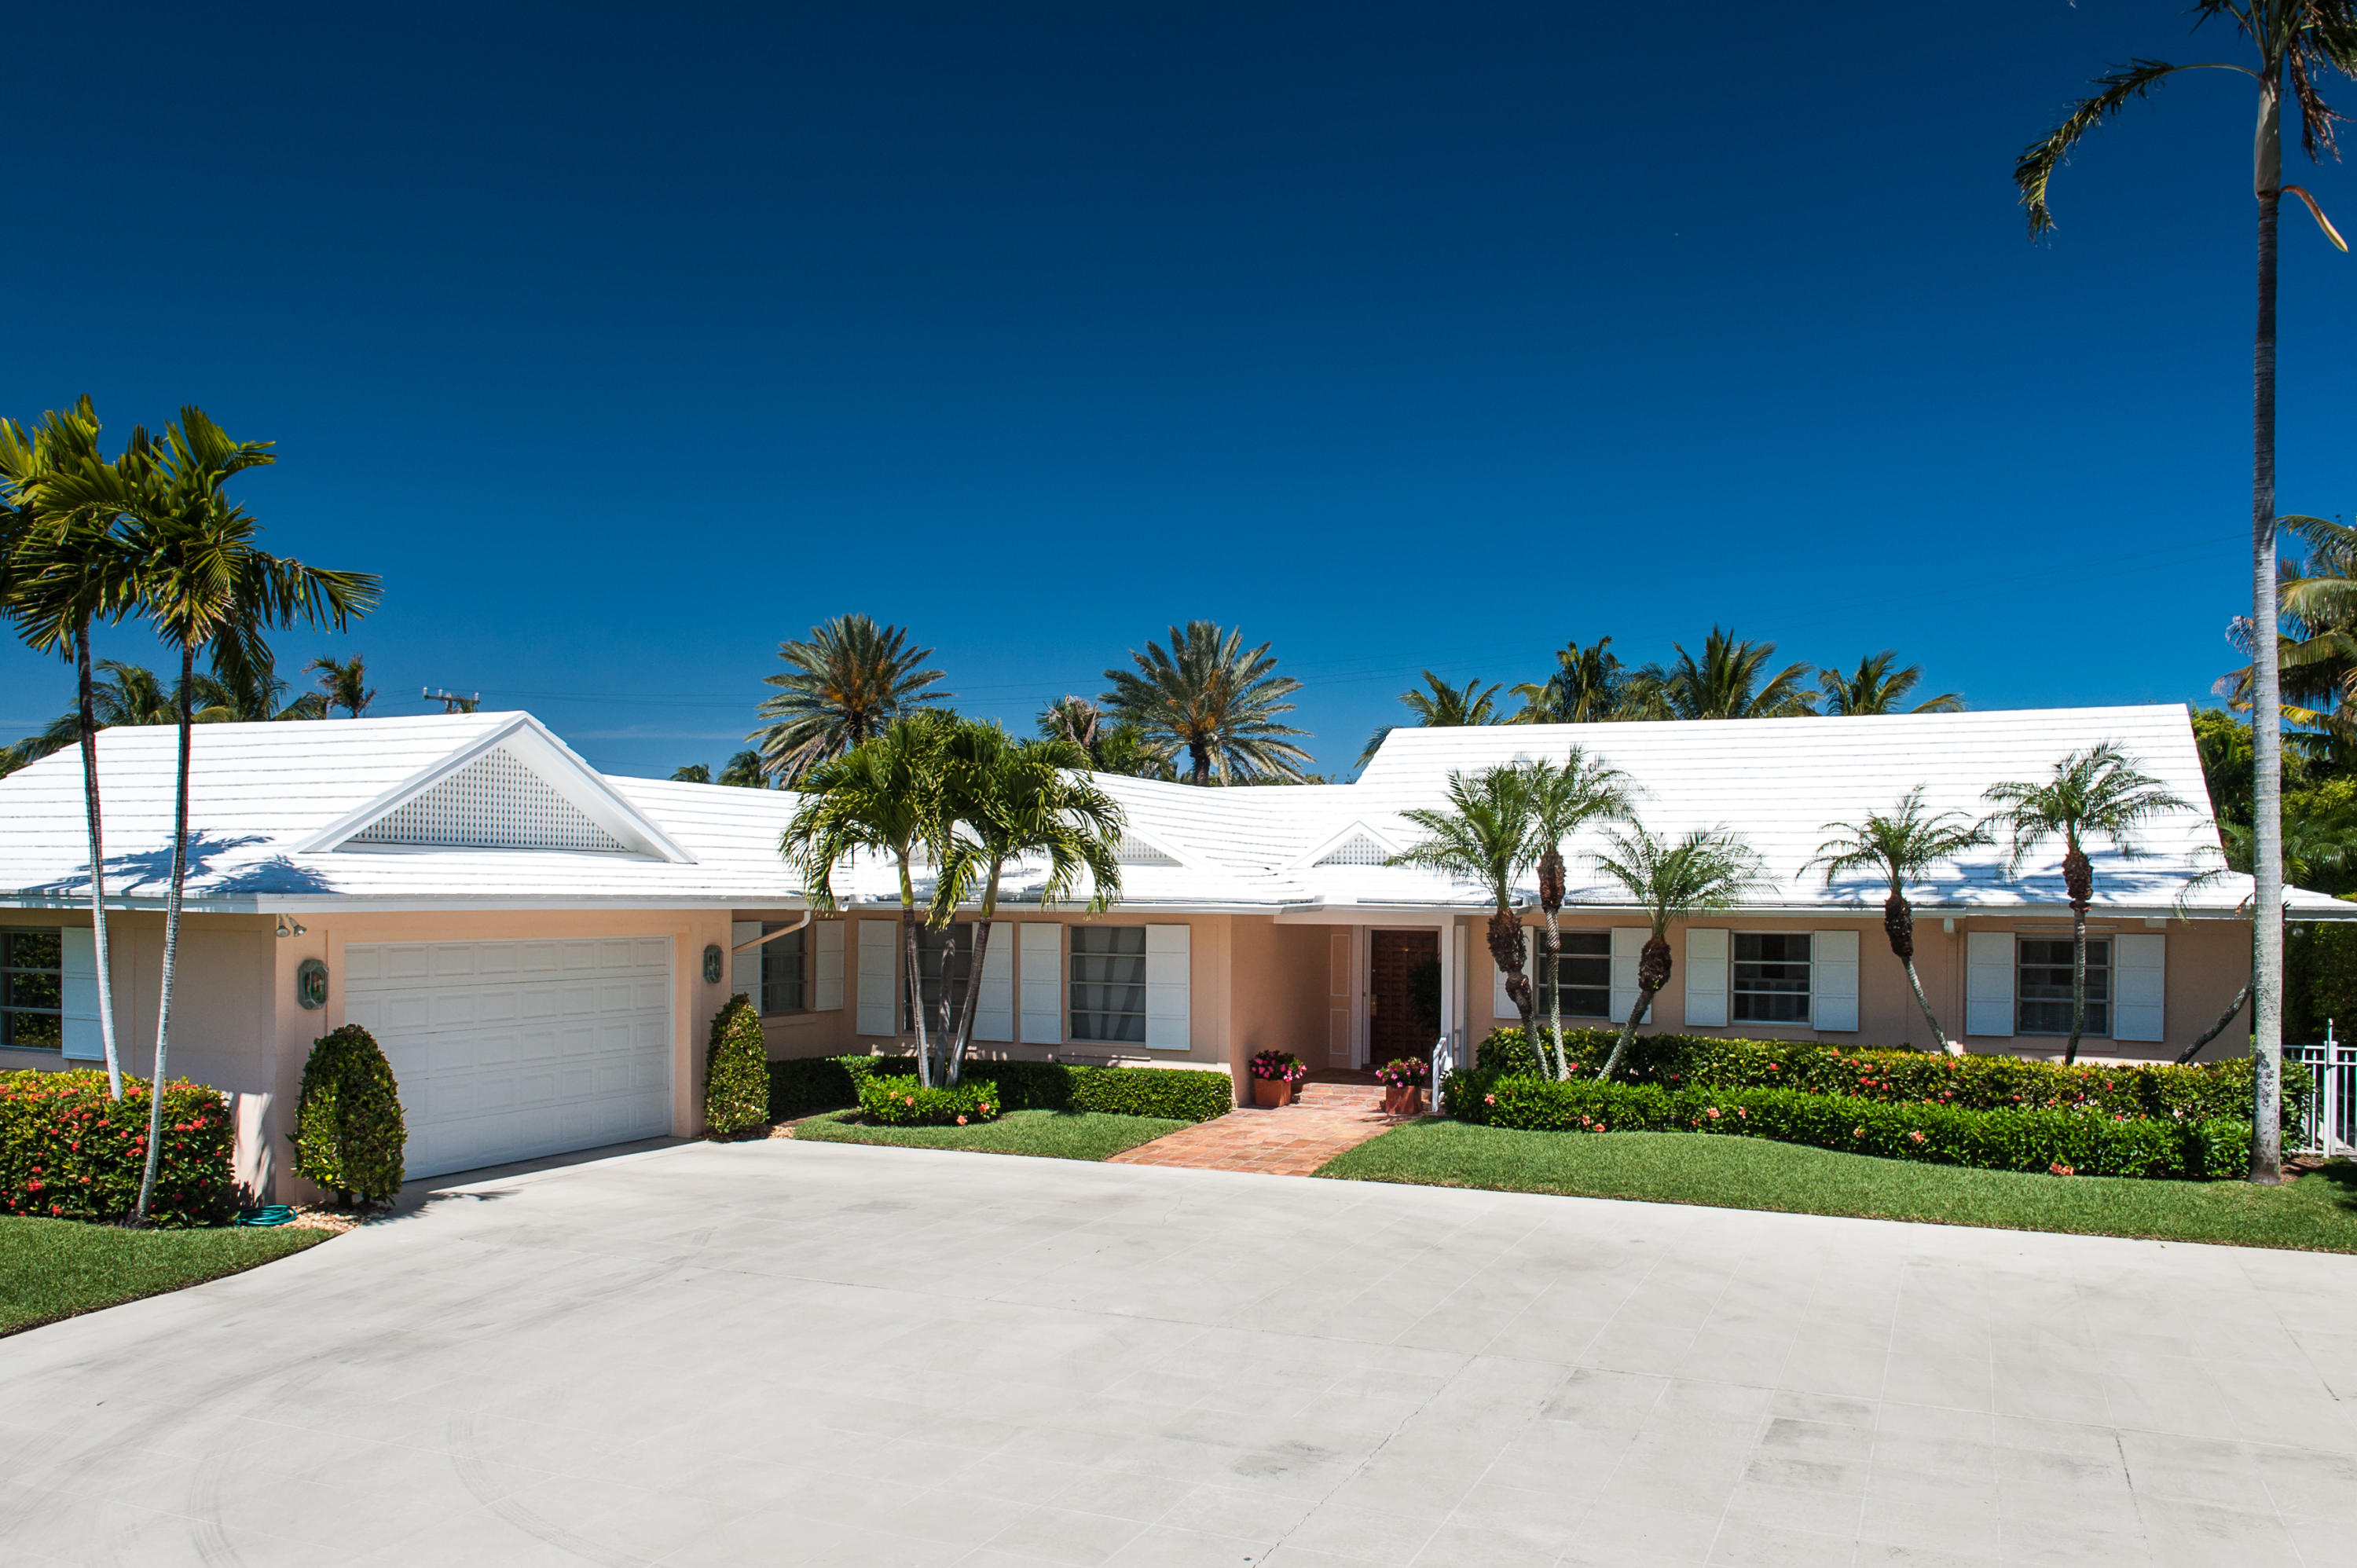 225 Tangier Avenue, Palm Beach, Florida 33480, 5 Bedrooms Bedrooms, ,5 BathroomsBathrooms,Single Family,For Sale,Tangier,RX-10494431